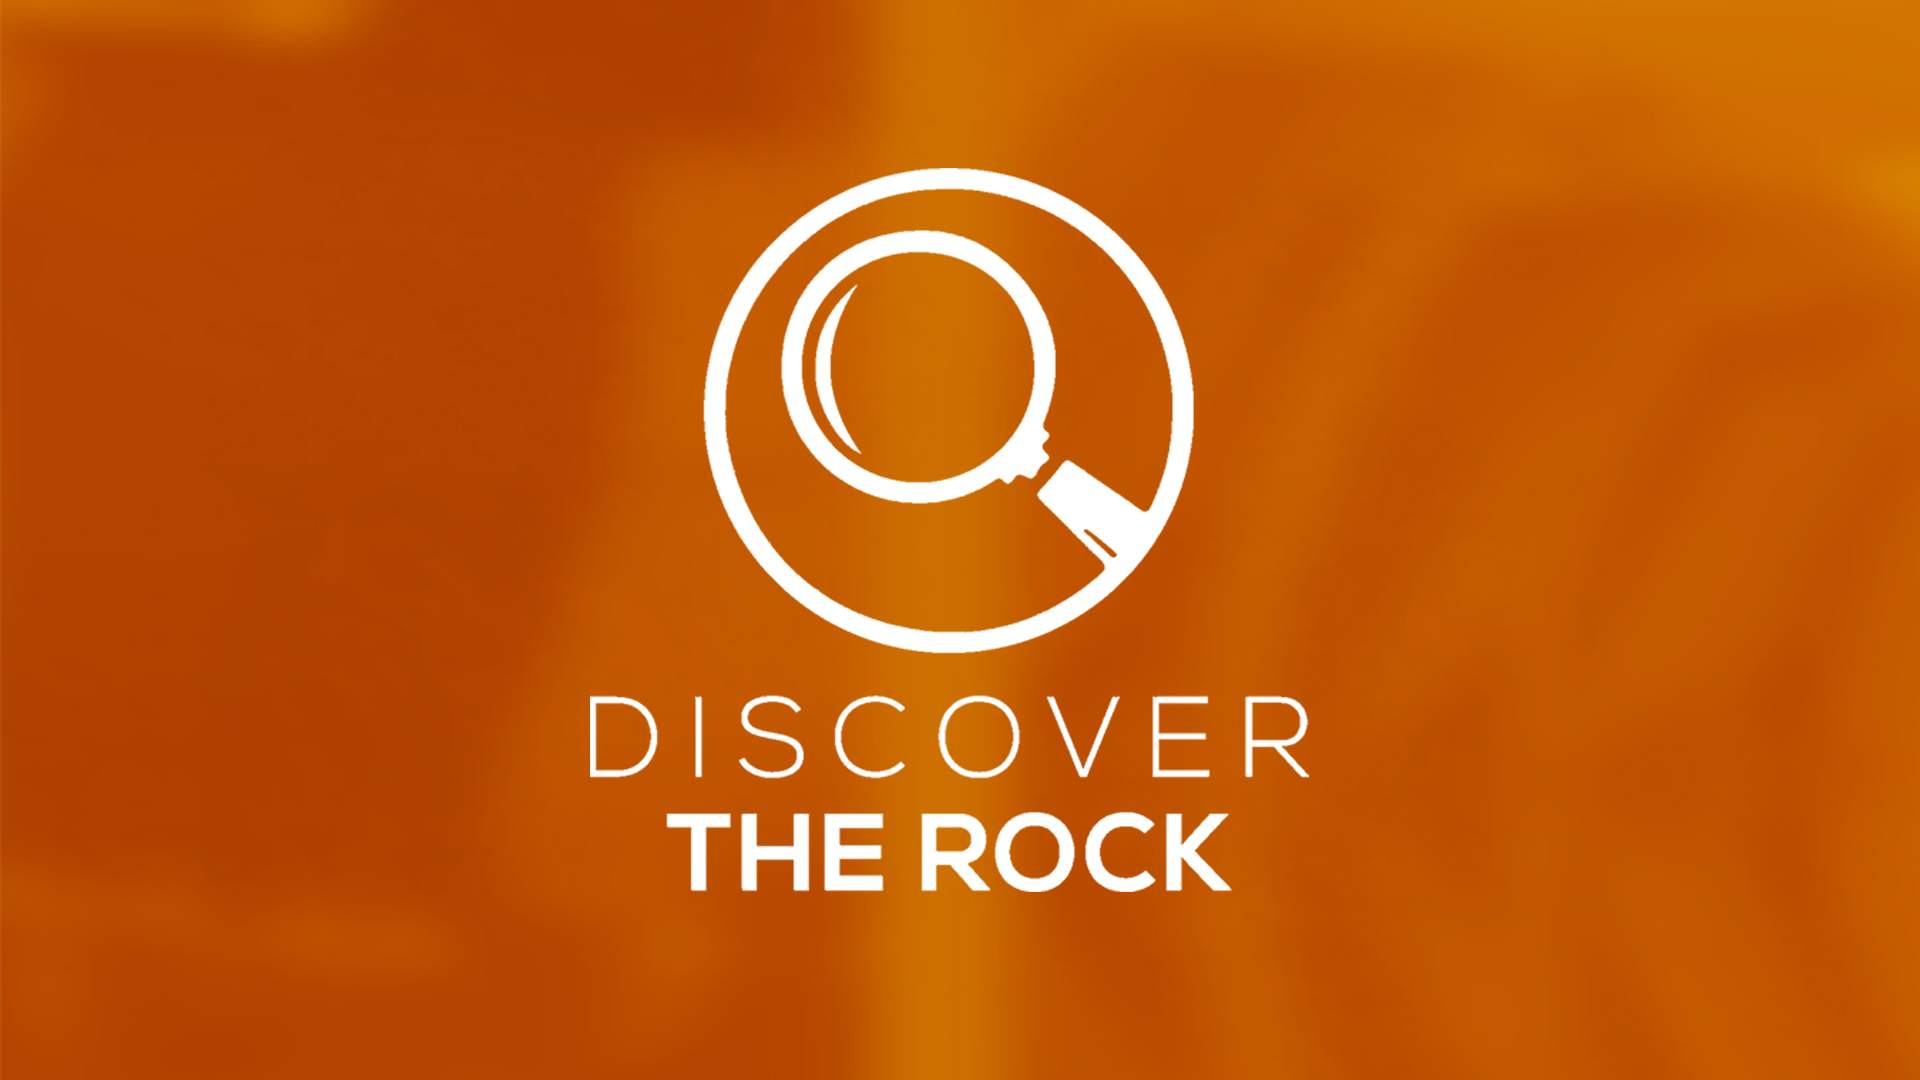 Discover the Rock